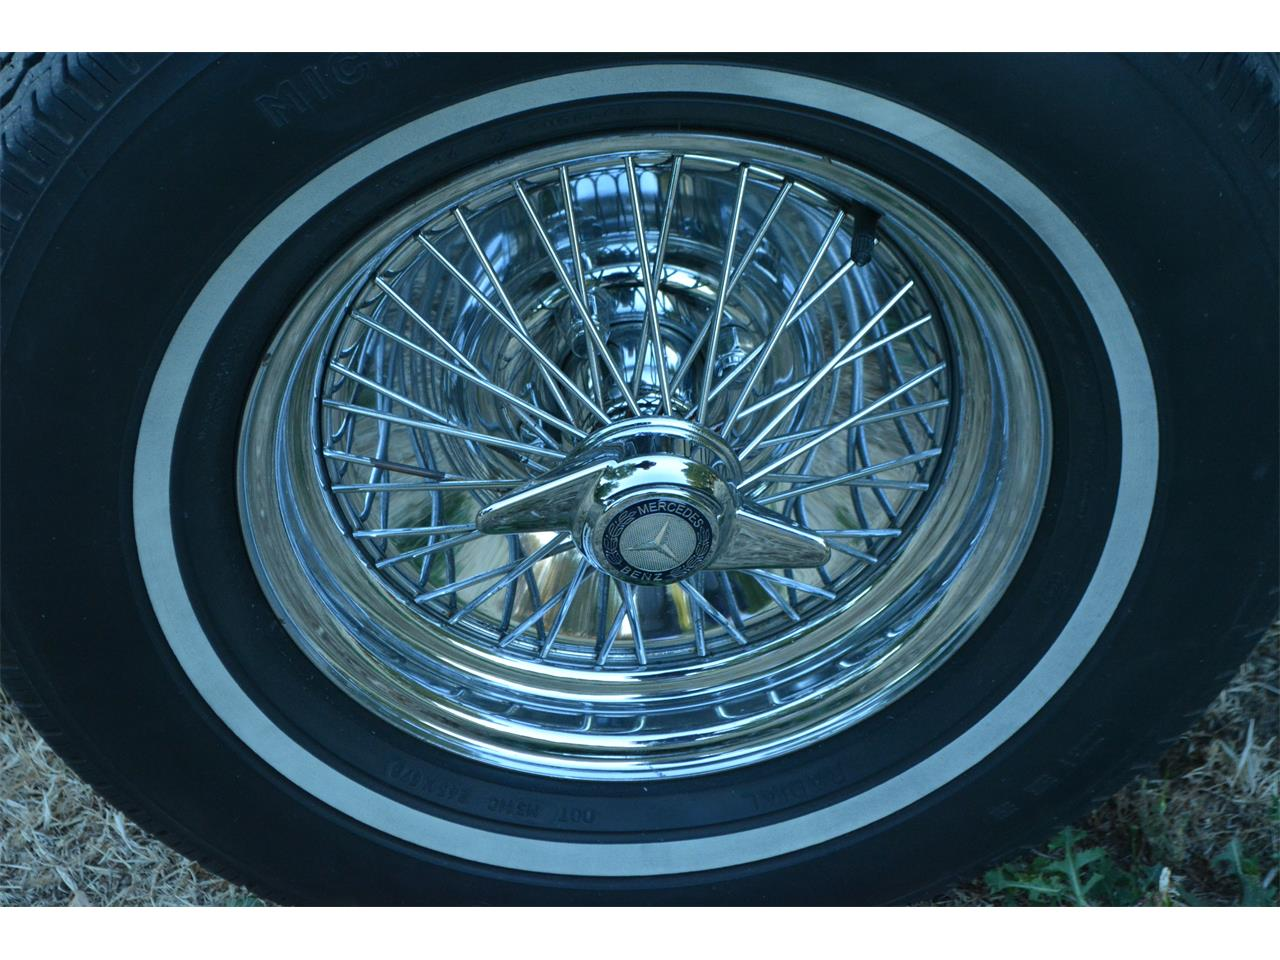 Large Picture of Classic 1929 Mercedes-Benz SSK Replica - $10,000.00 Offered by Robz Ragz - LAJ0